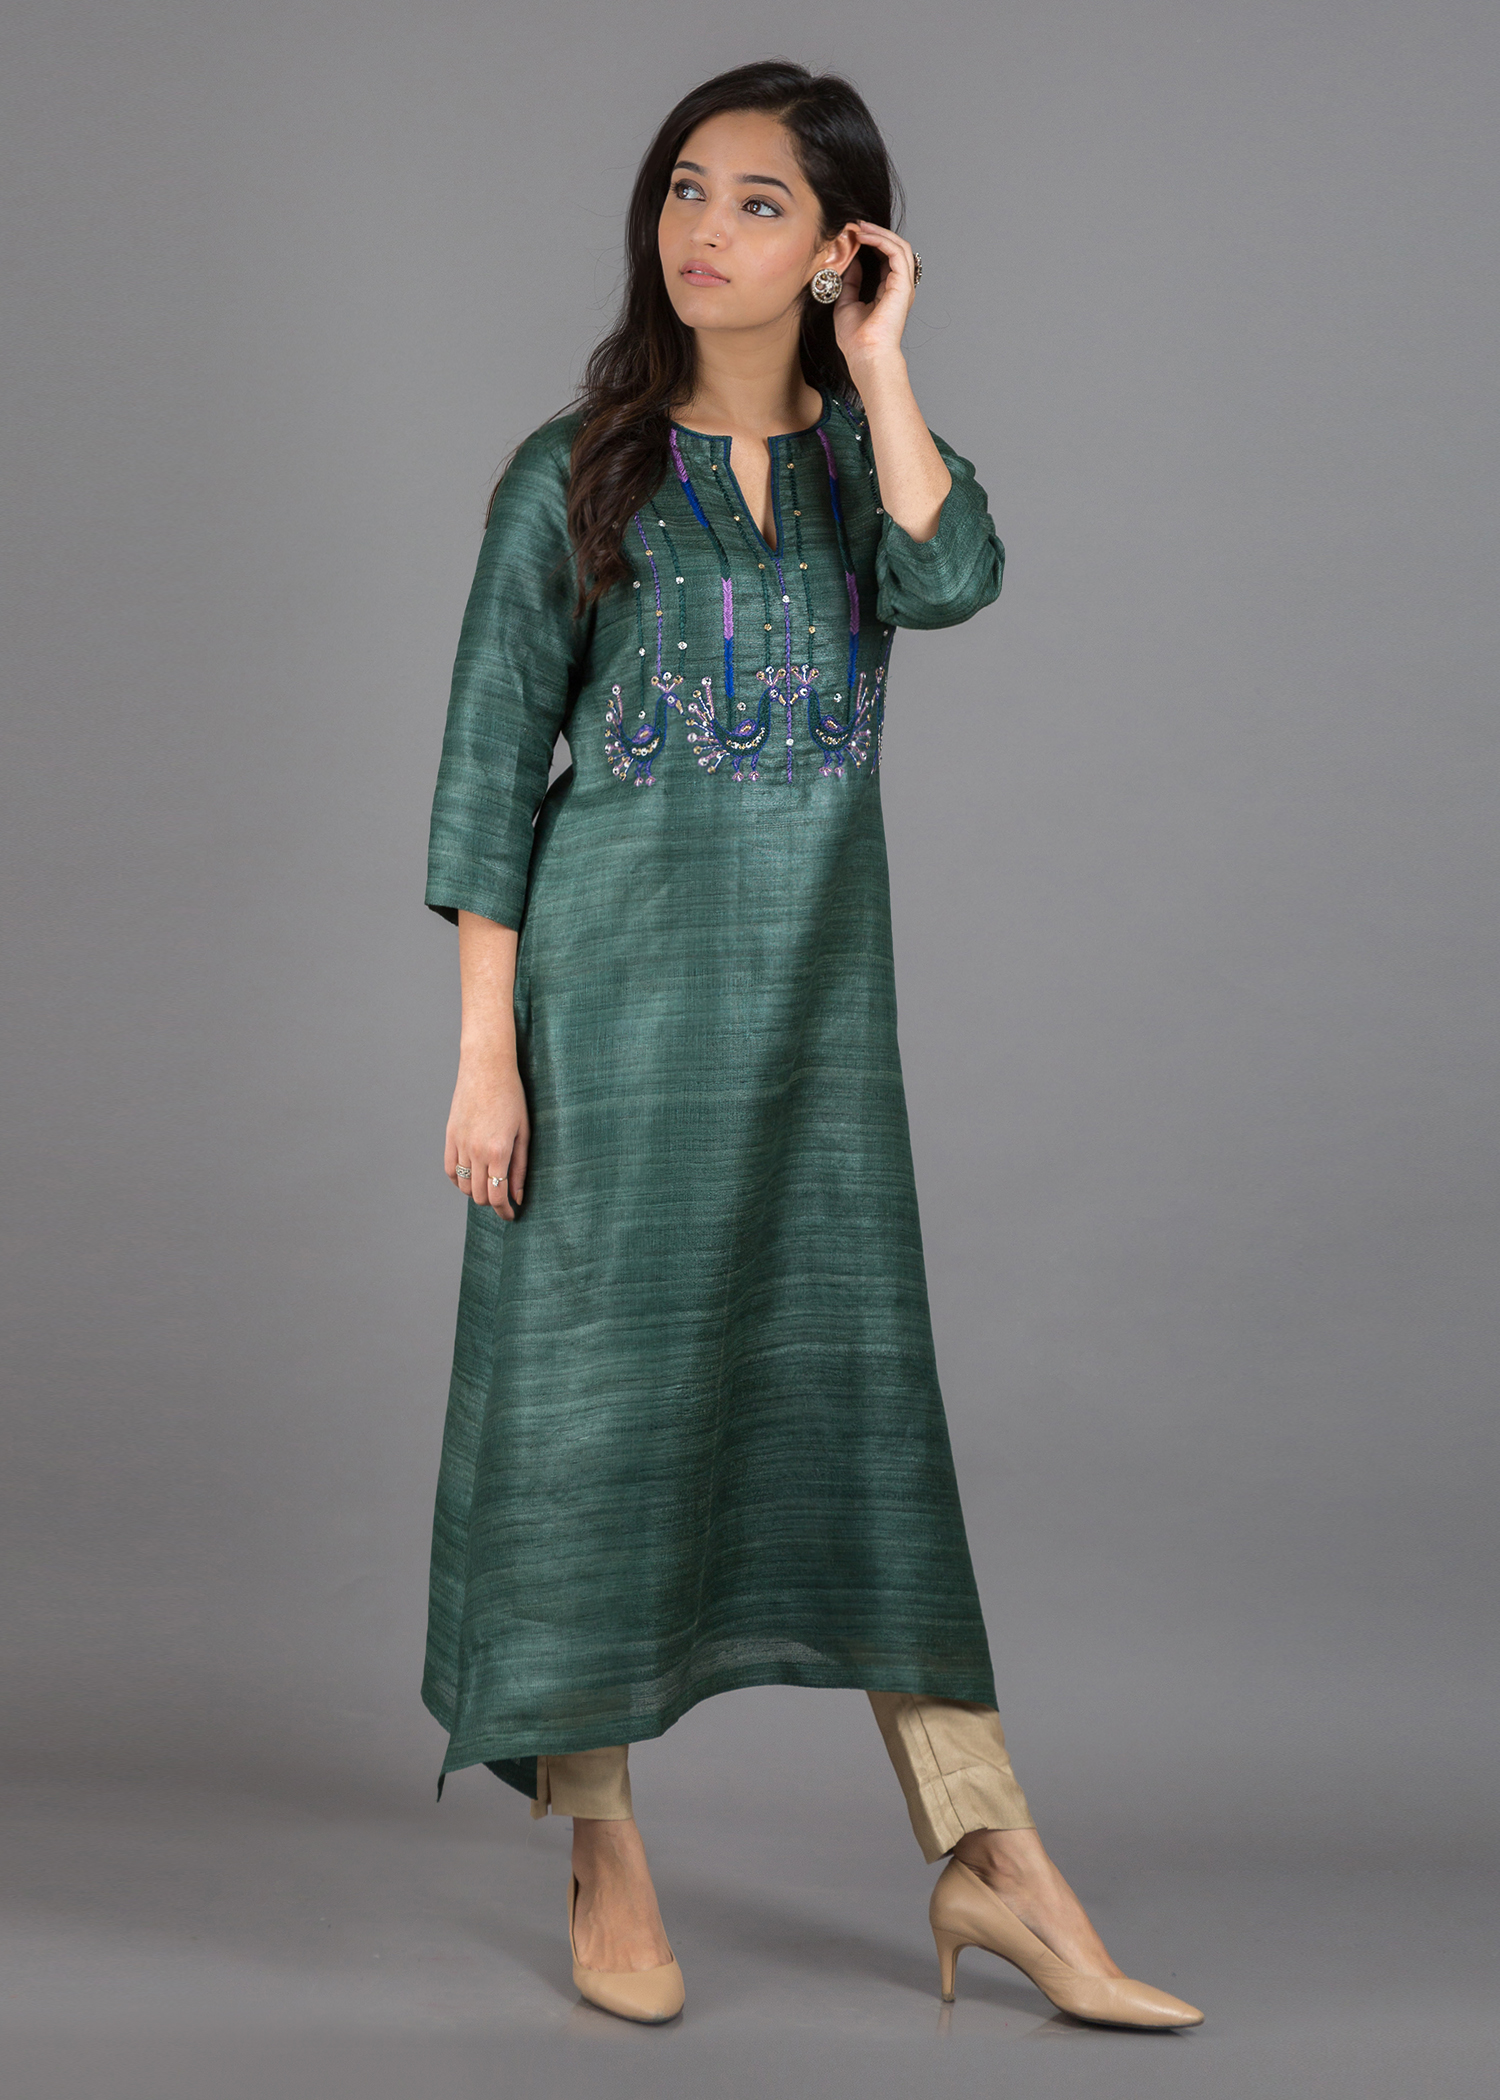 Bottle Green Bhagalpuri Handwoven Silk Kurta with Dupatta & Pants